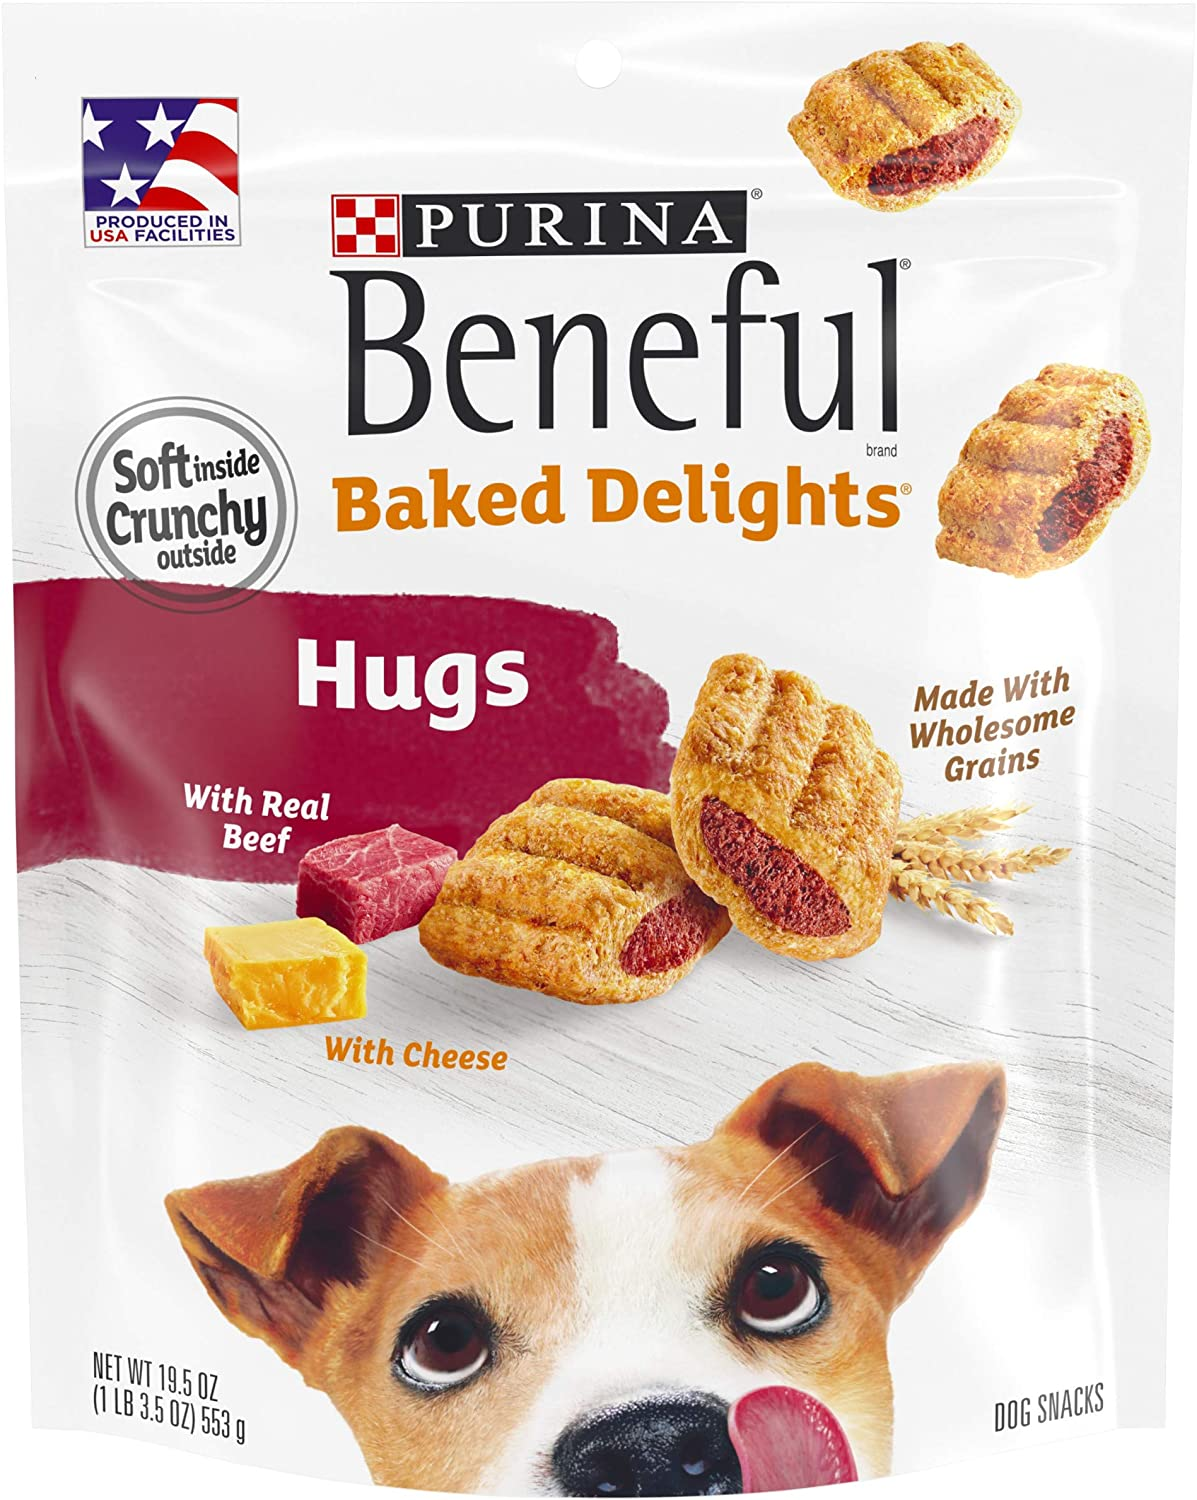 Purina Beneful Baked Delights Hugs Dog Treats